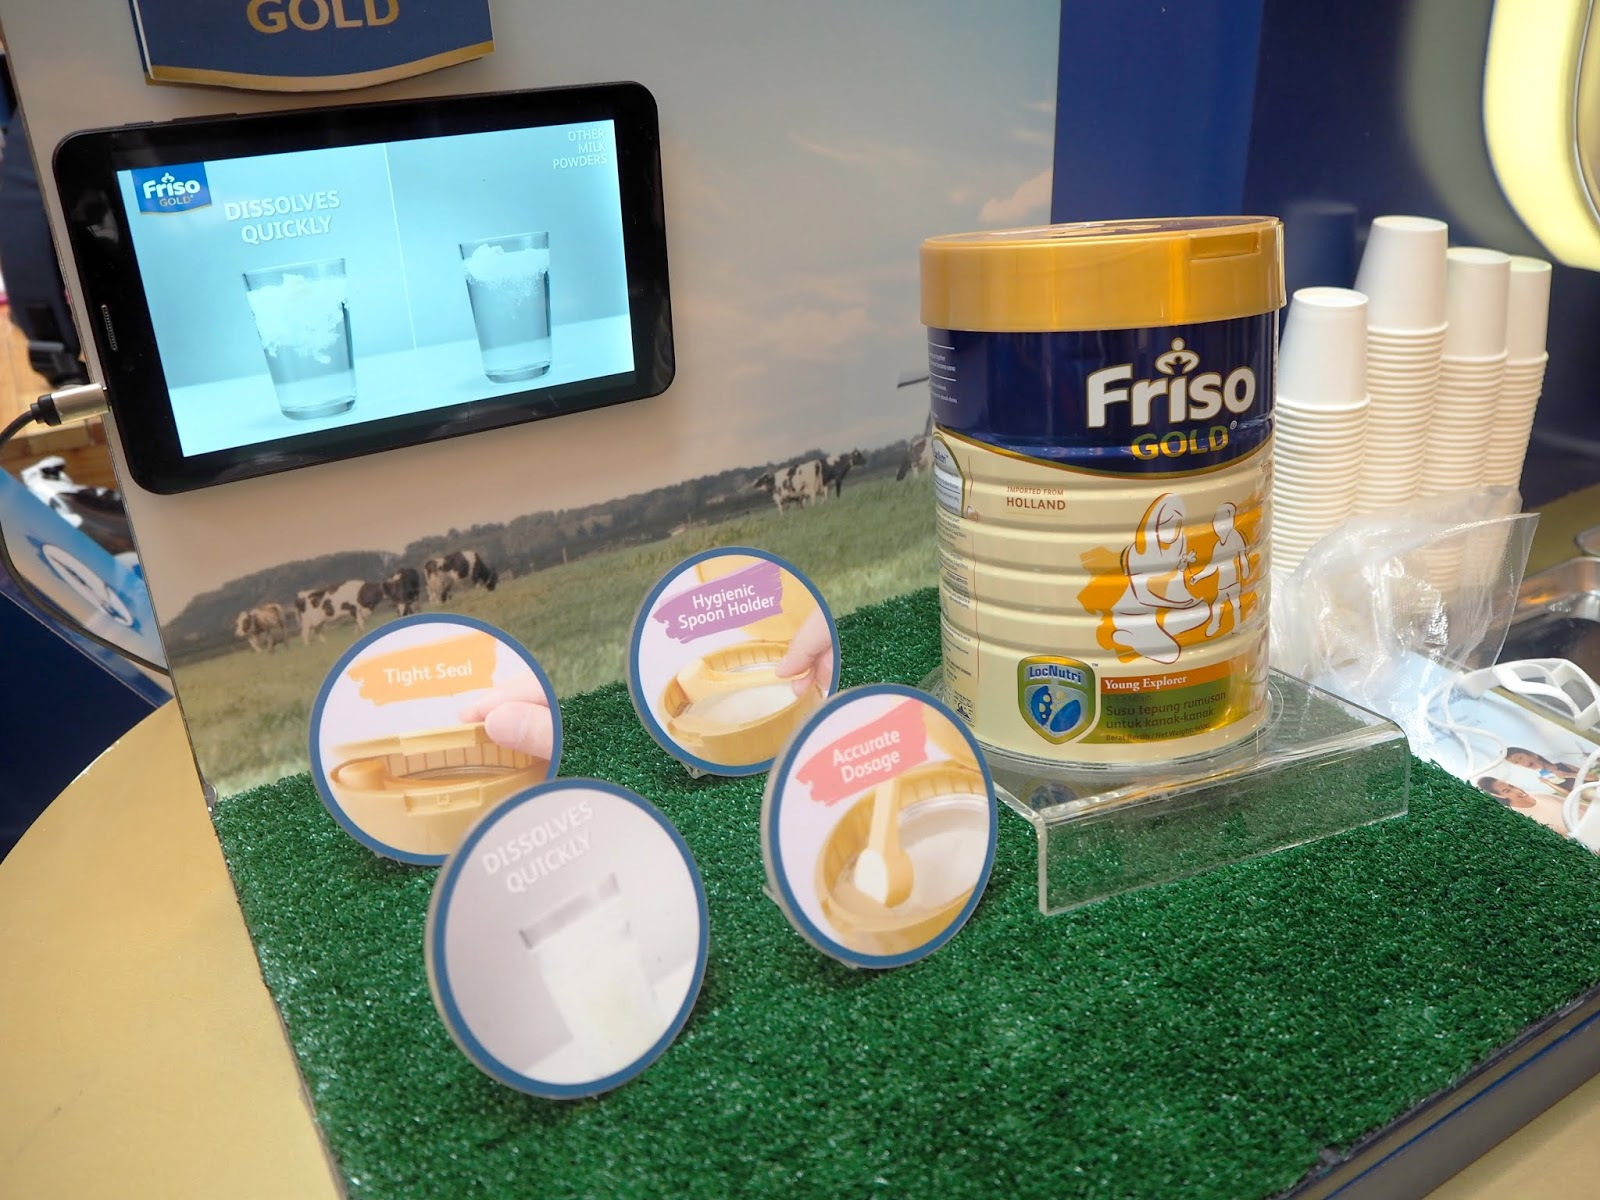 Friso Gold Experience Holland Roadshow At Sunway Pyramid Jia Shin Lee Frisolac 2 900gr I Was First Introduced To When Recently Me And My Friends Were Discussing On Milk Powder For Children Little Did Know Is 100